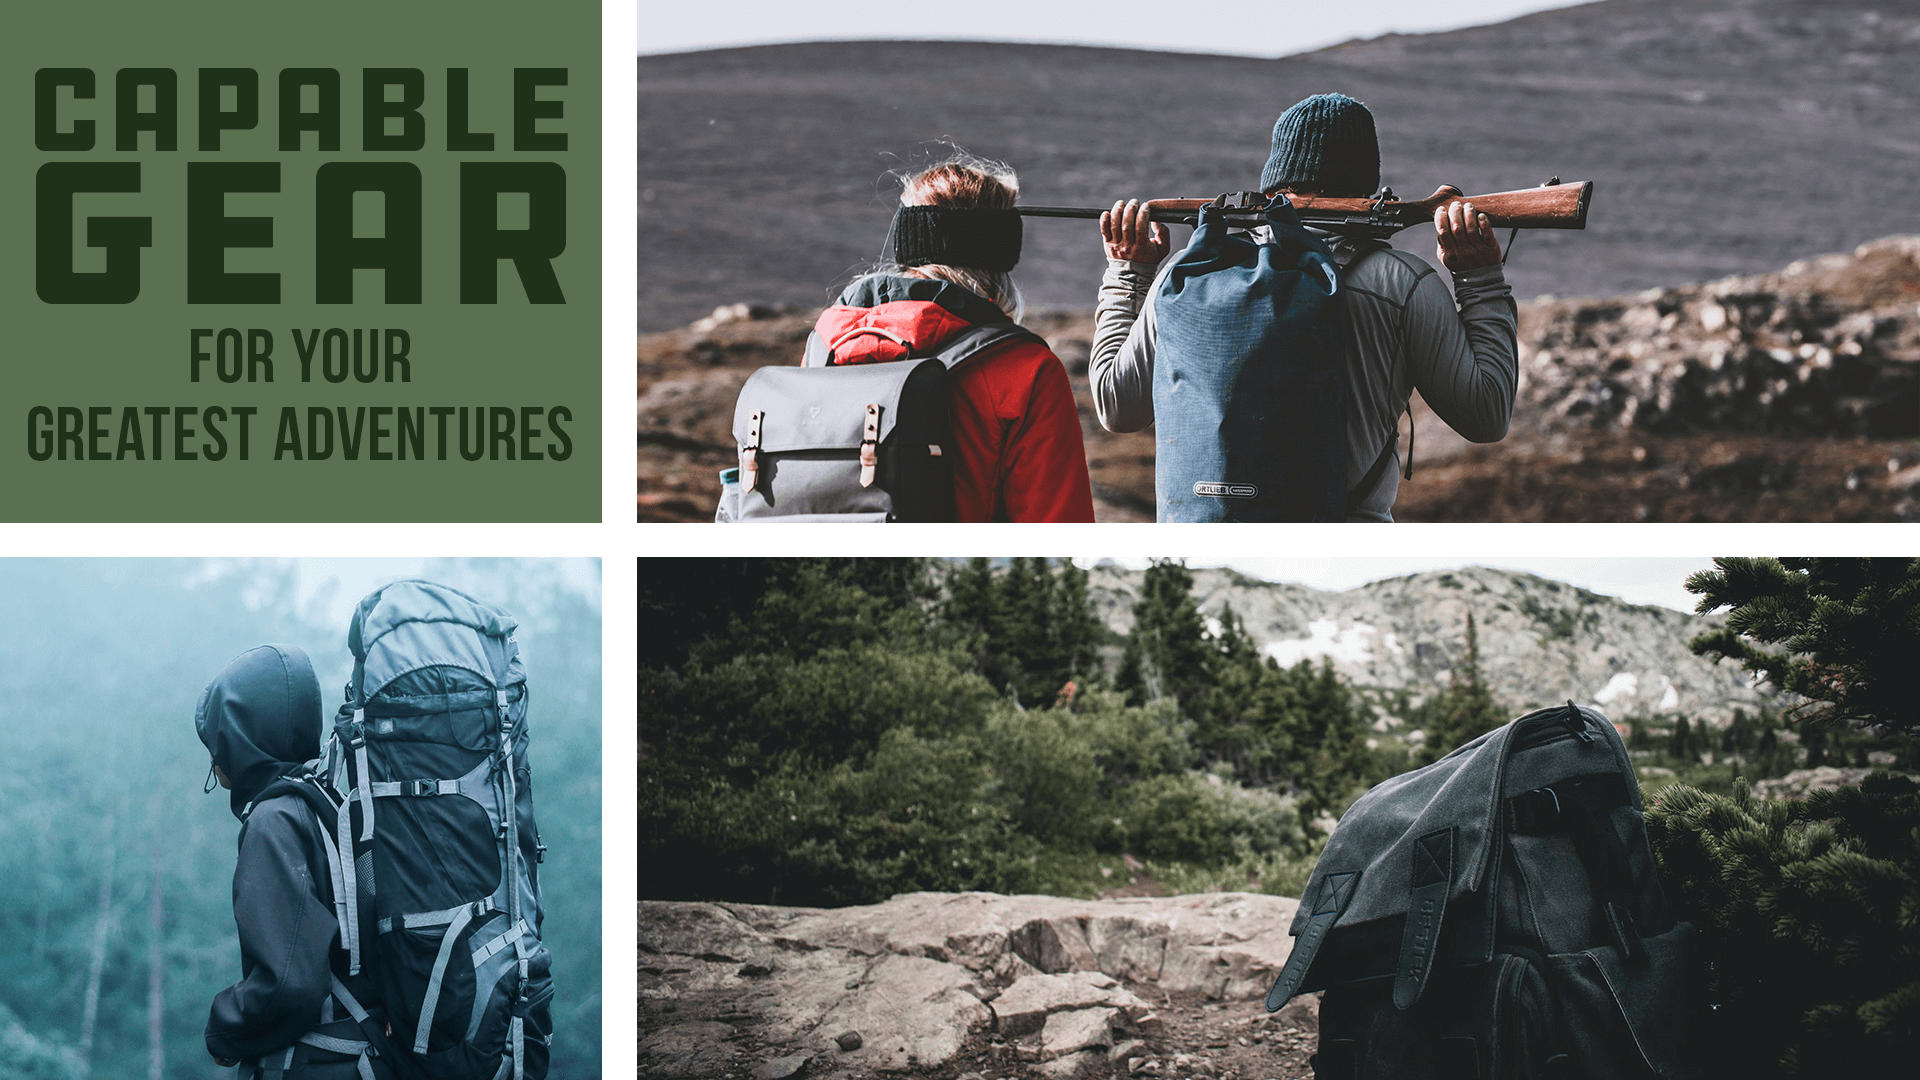 Subsistence supply company Capable Gear Image feature hikers and adventurers